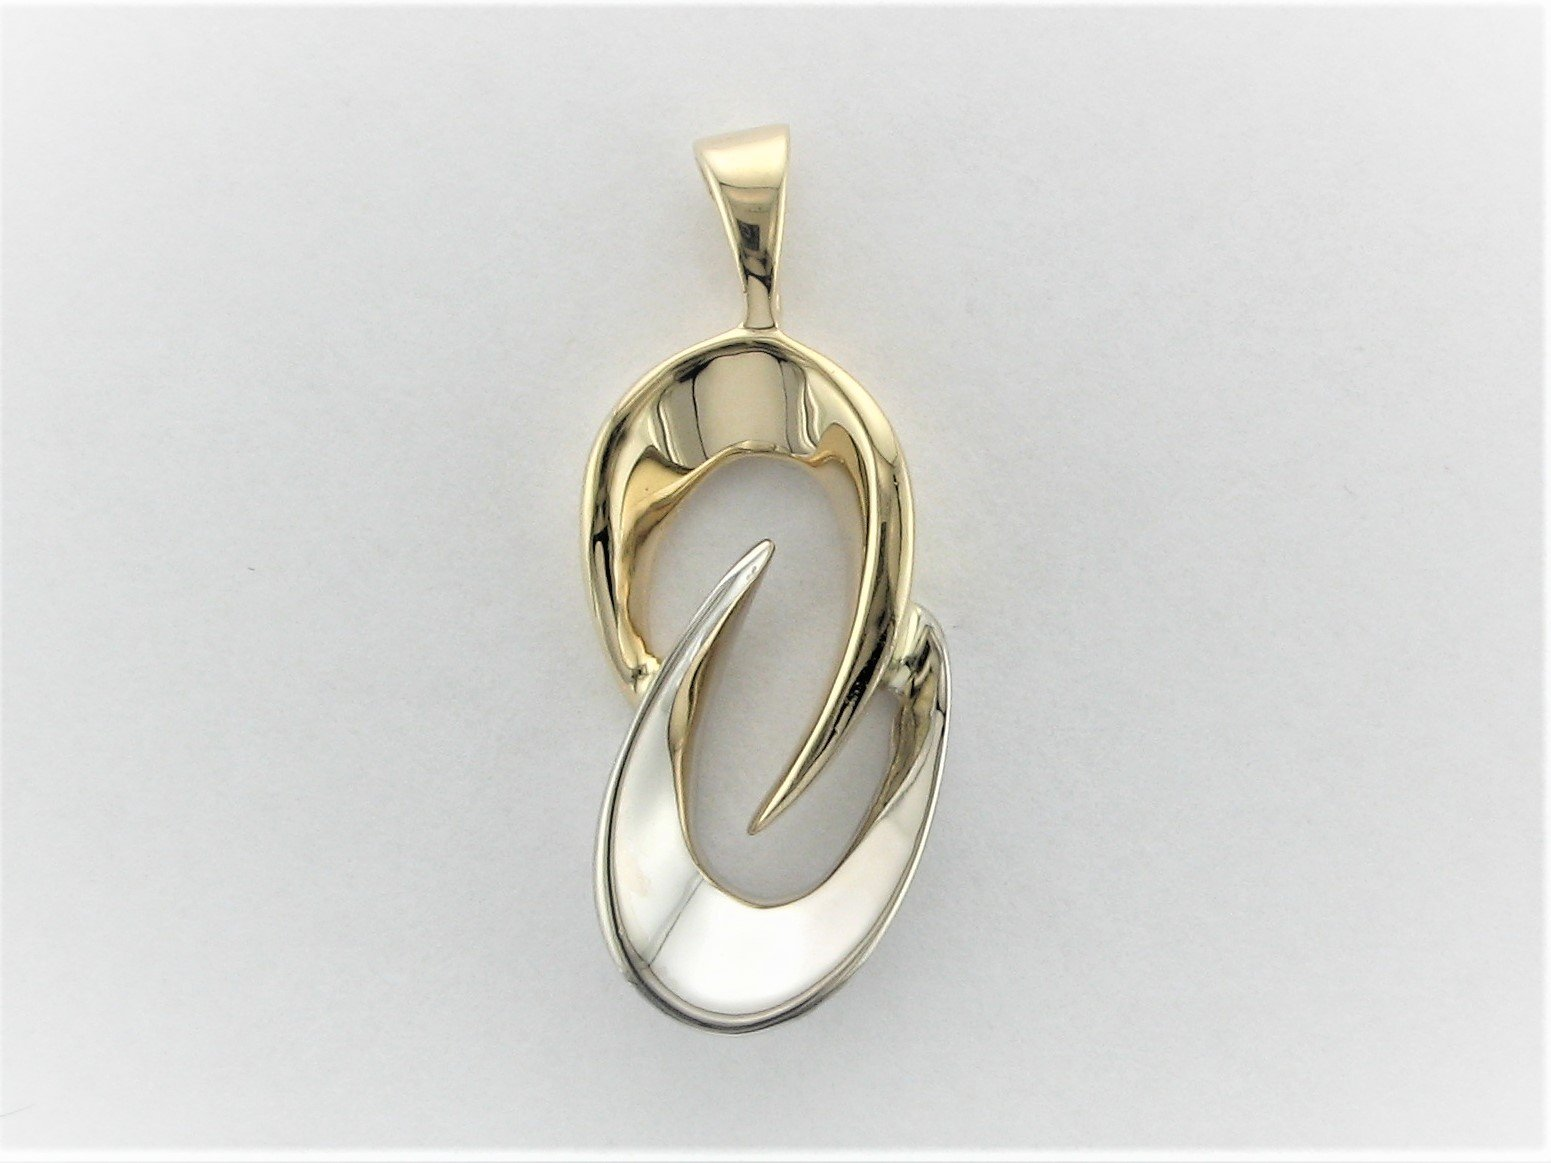 Two Tone Freeform Pendant Set in 14 Karat Yellow and White Gold